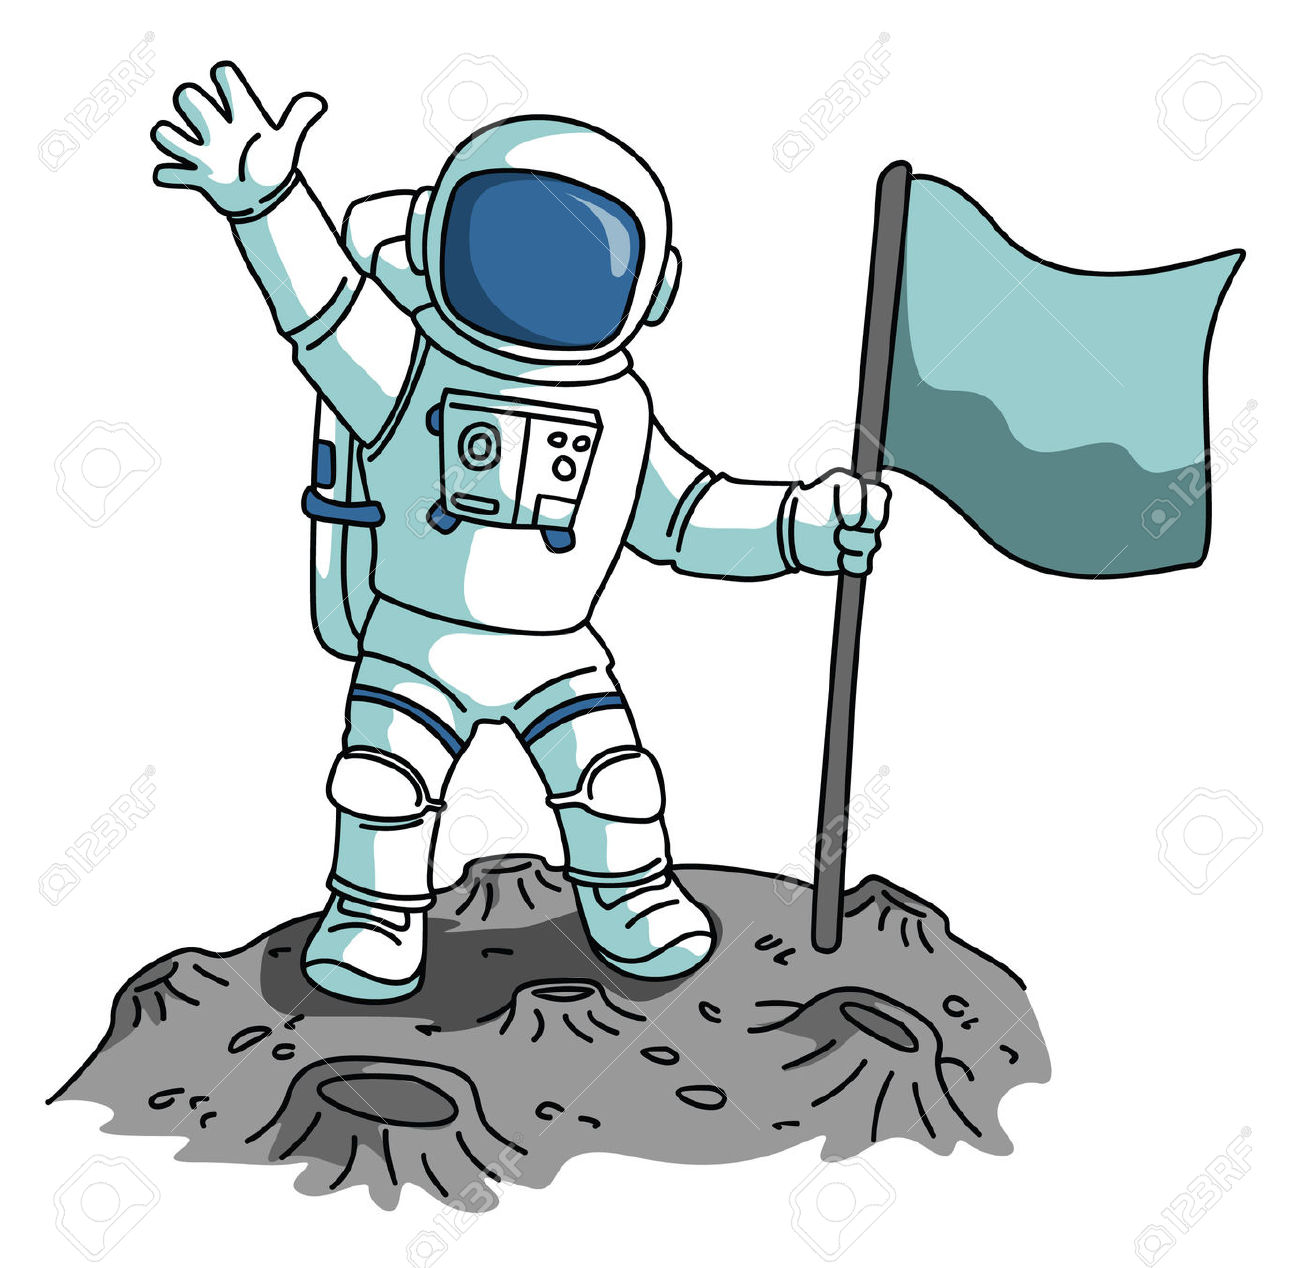 Astronaut Royalty Free Cliparts, Vectors, And Stock Illustration.